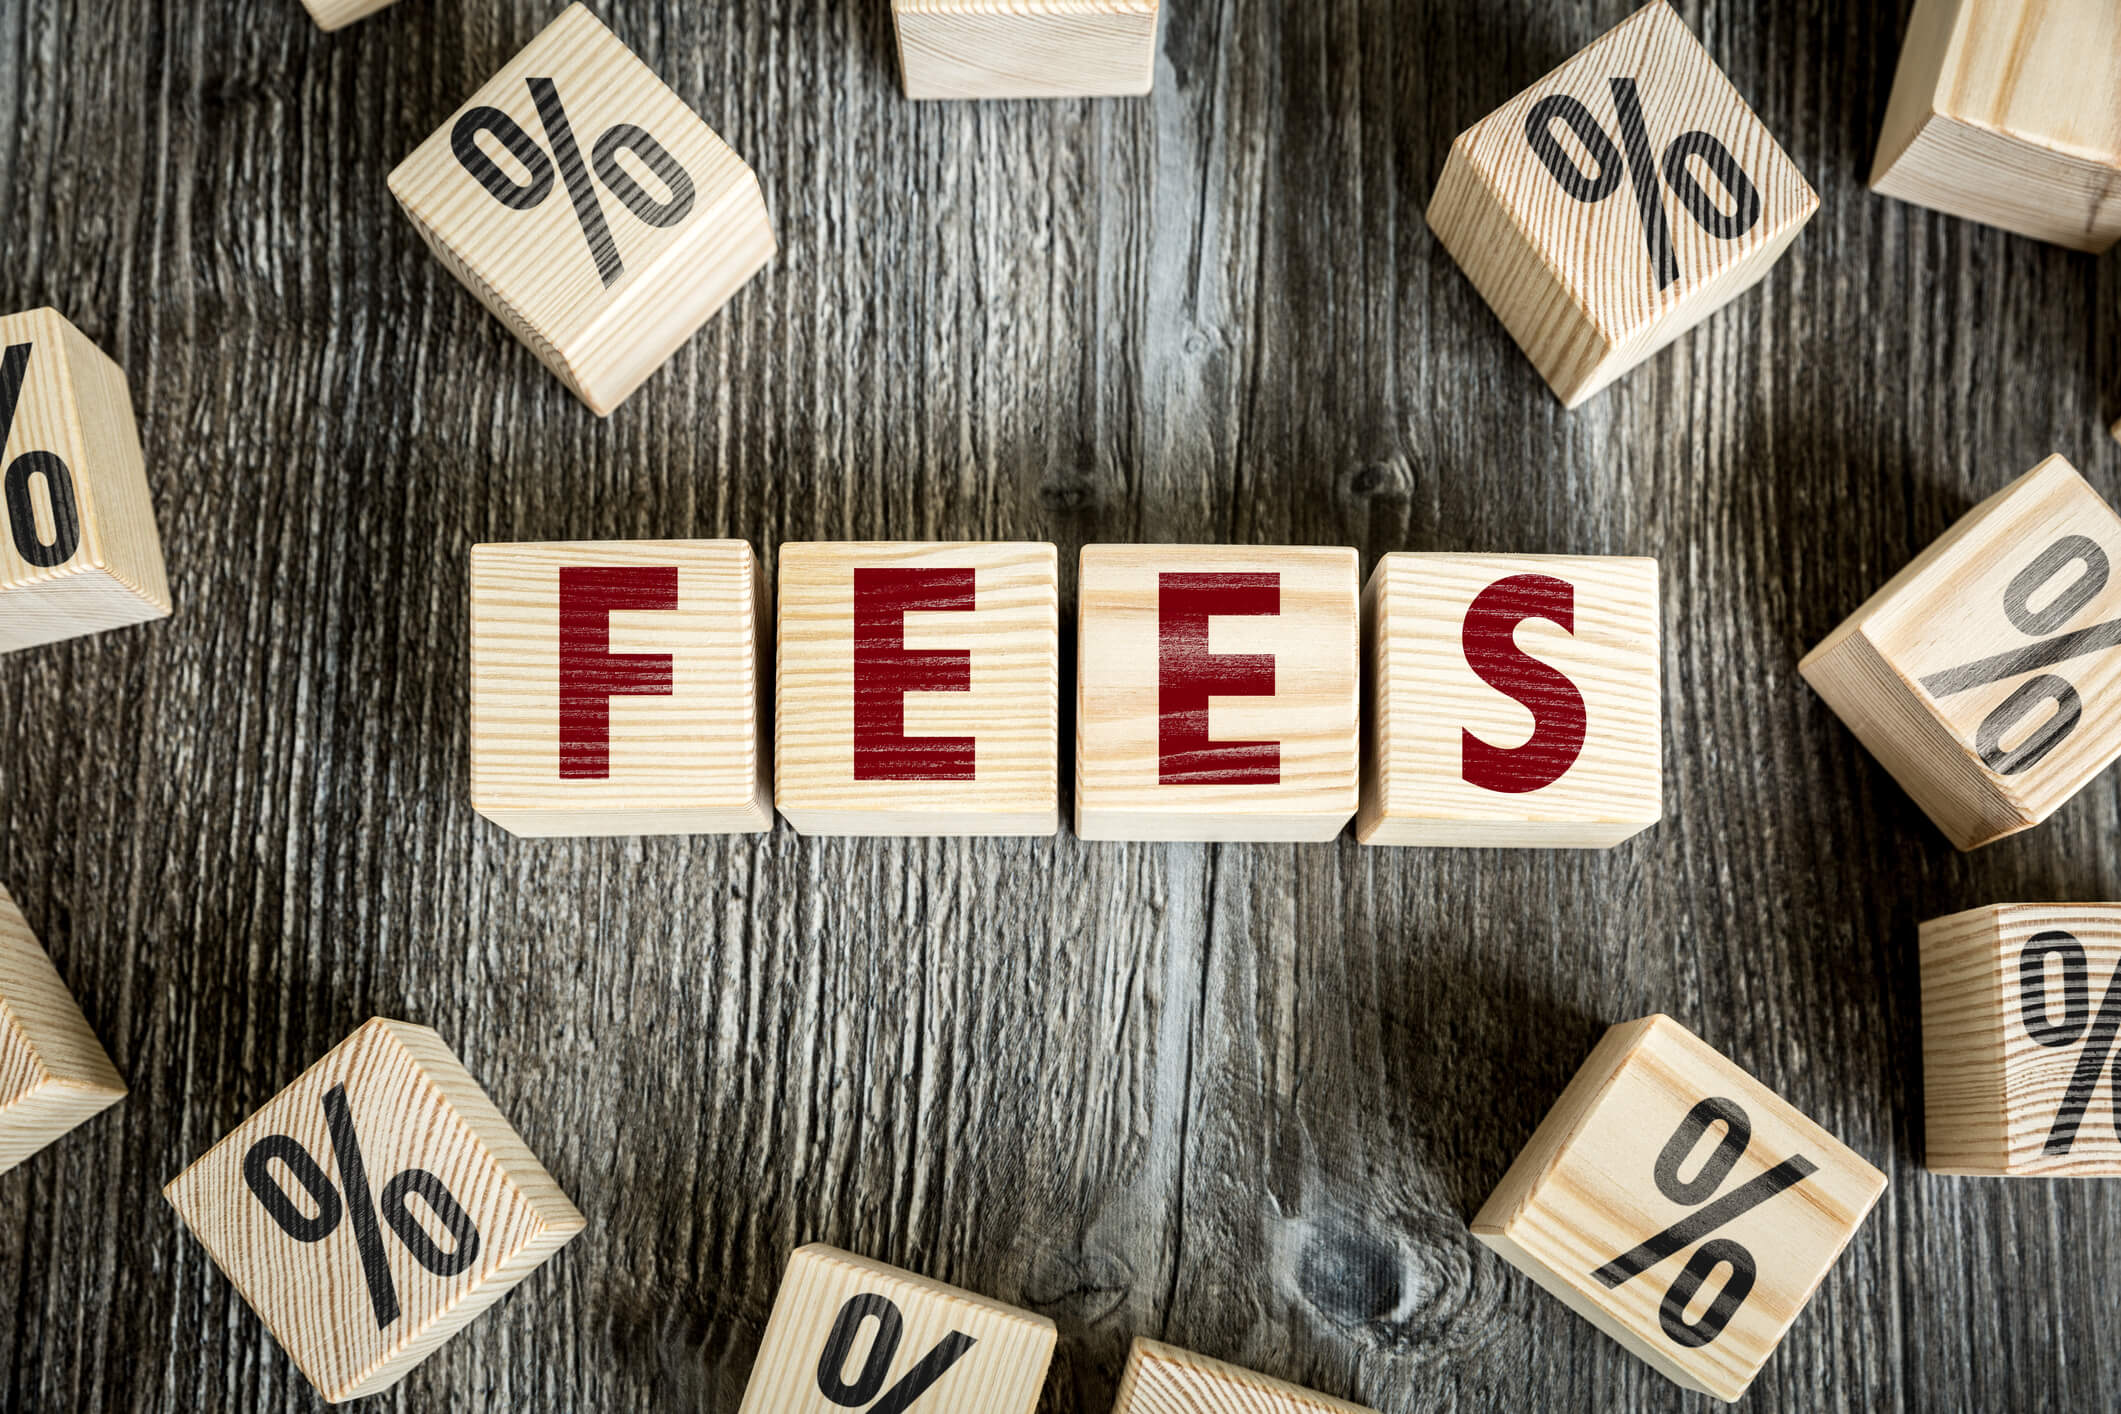 Investment Fees - Complete Controller